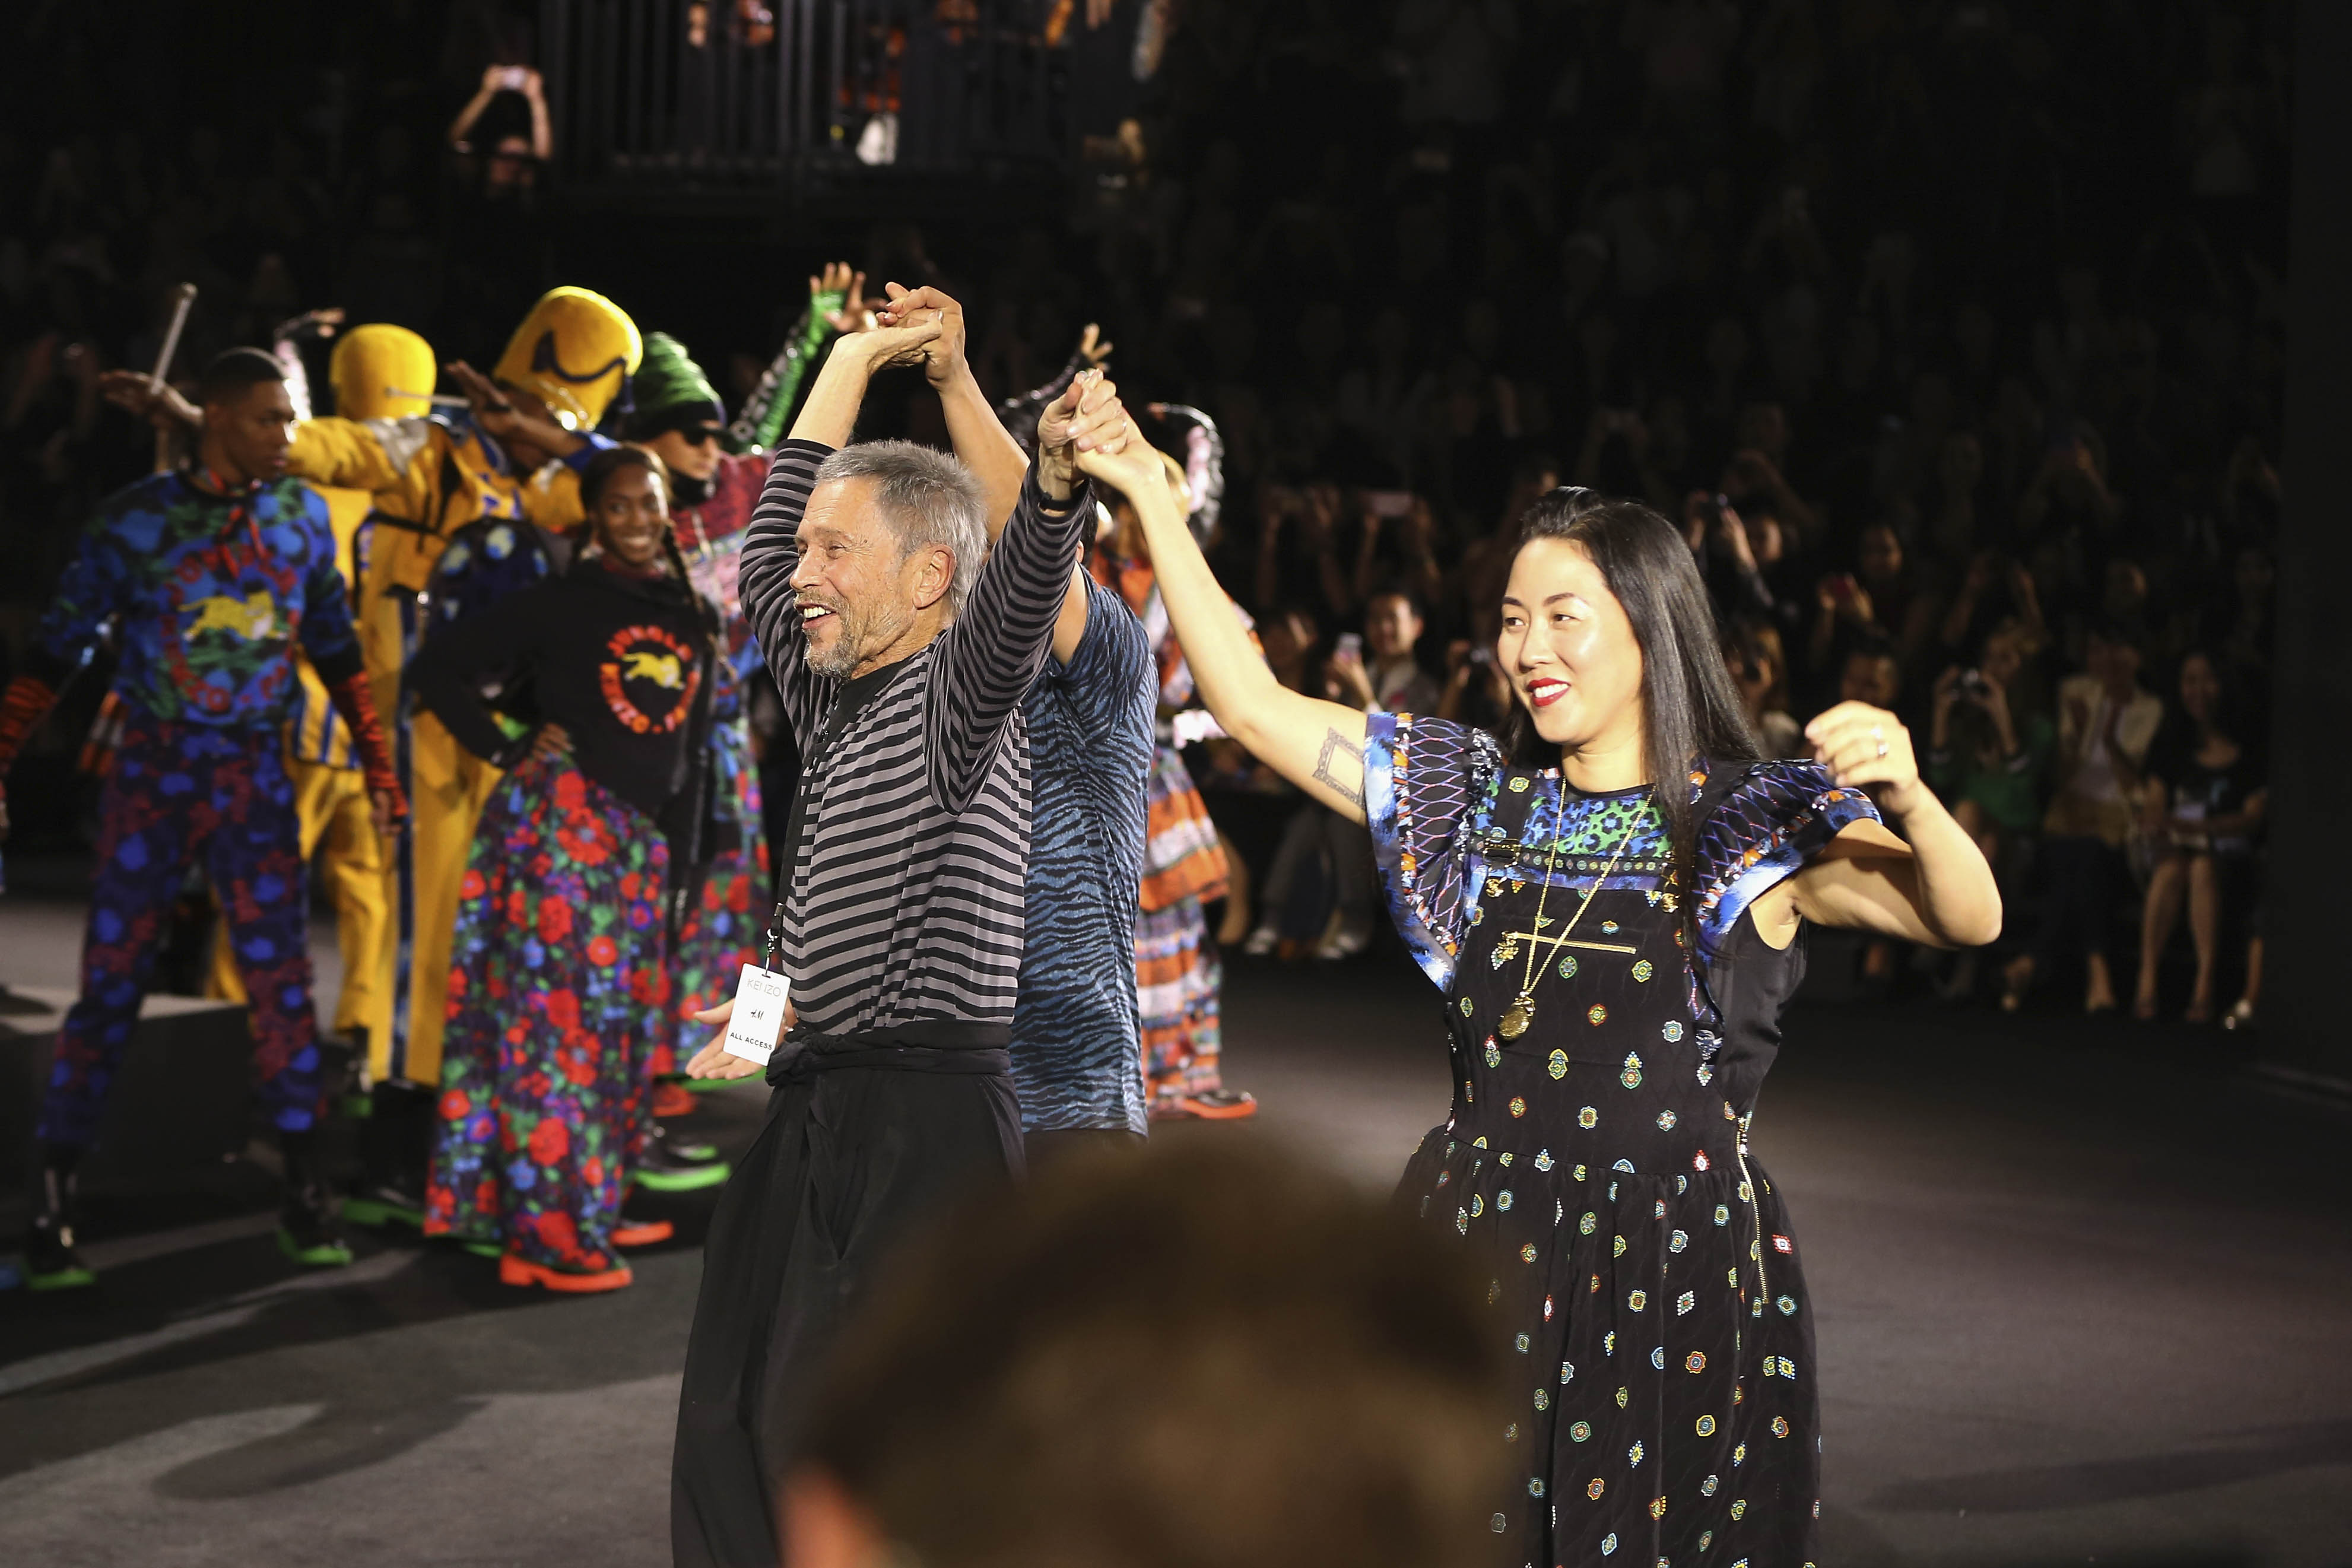 kenzo-x-hm-nyc-event-jean-paul-goude-carol-lim-0104